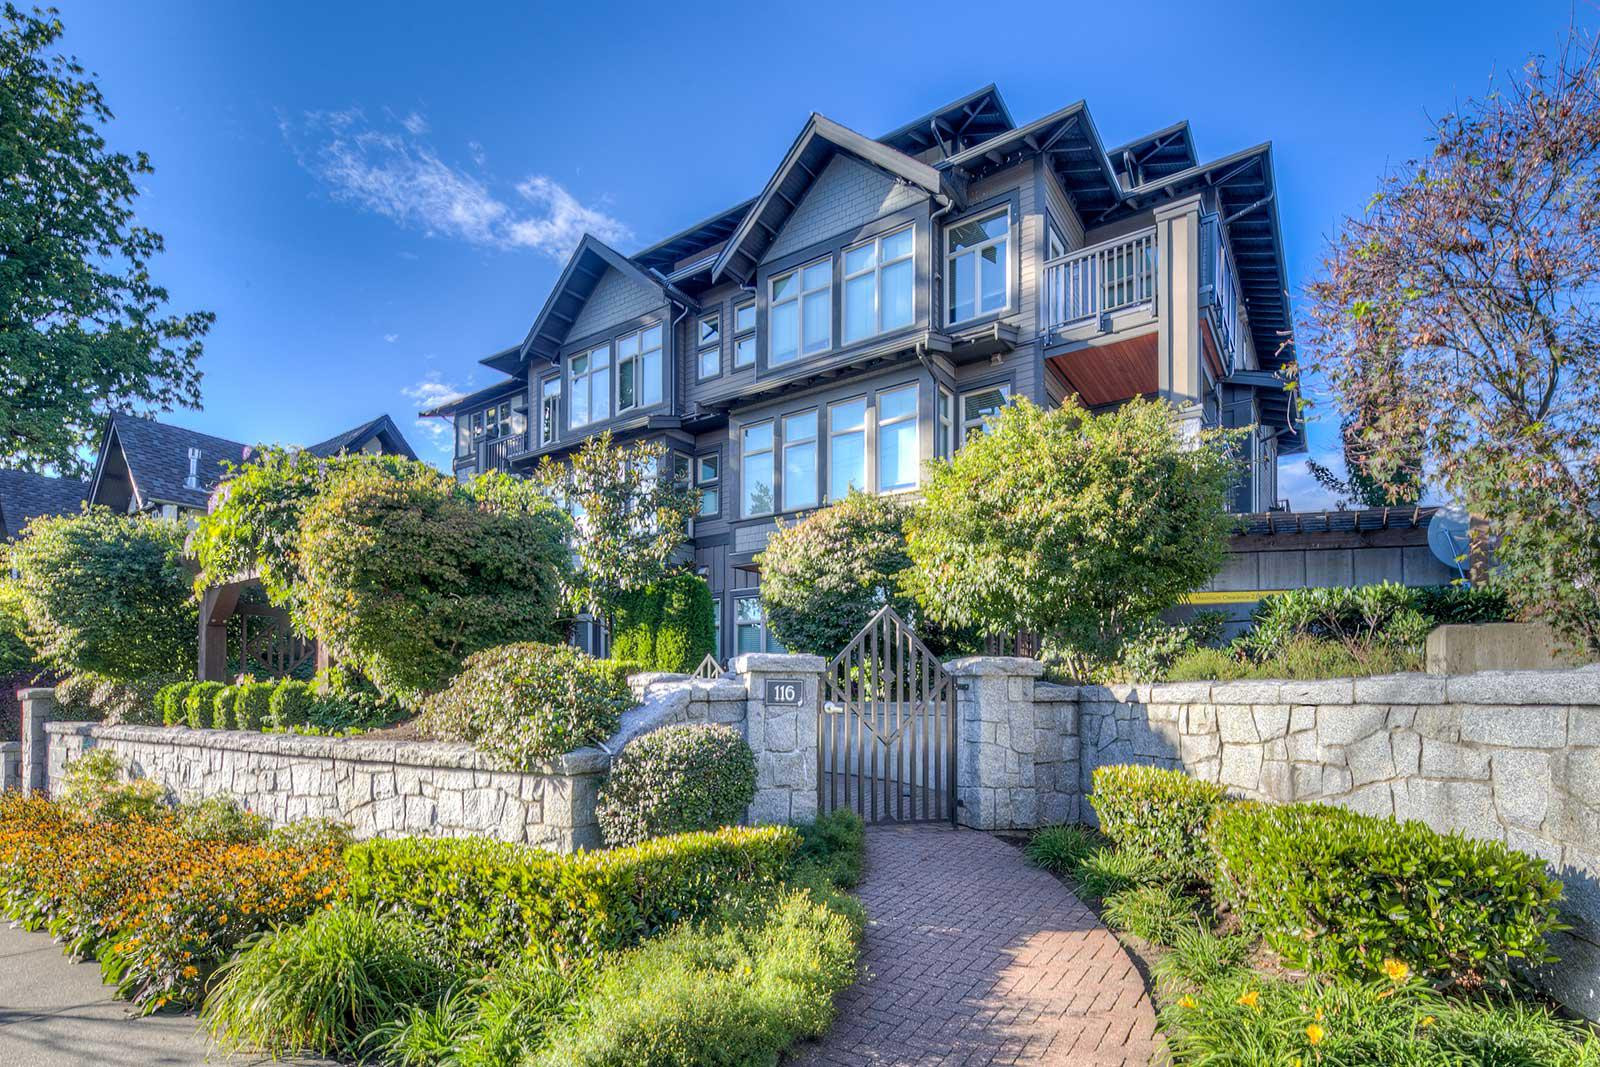 Addison at 116 23rd St W, North Vancouver City 0